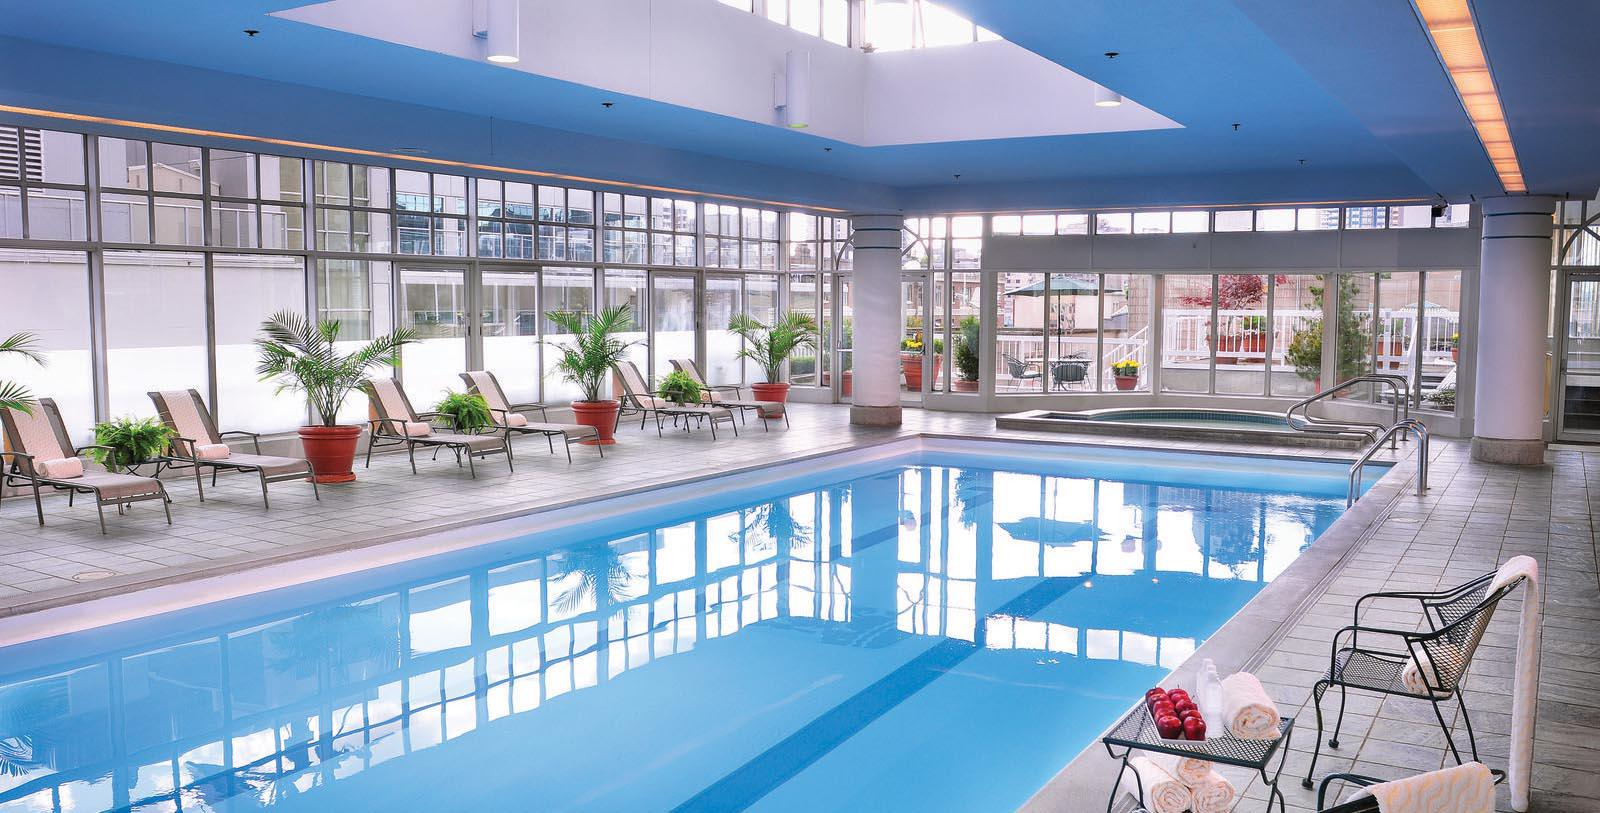 Image of indoor pool at Fairmont Hotel Vancouver, 1939, Member of Historic Hotels Worldwide, in Vancouver, Canada, Hot Deals